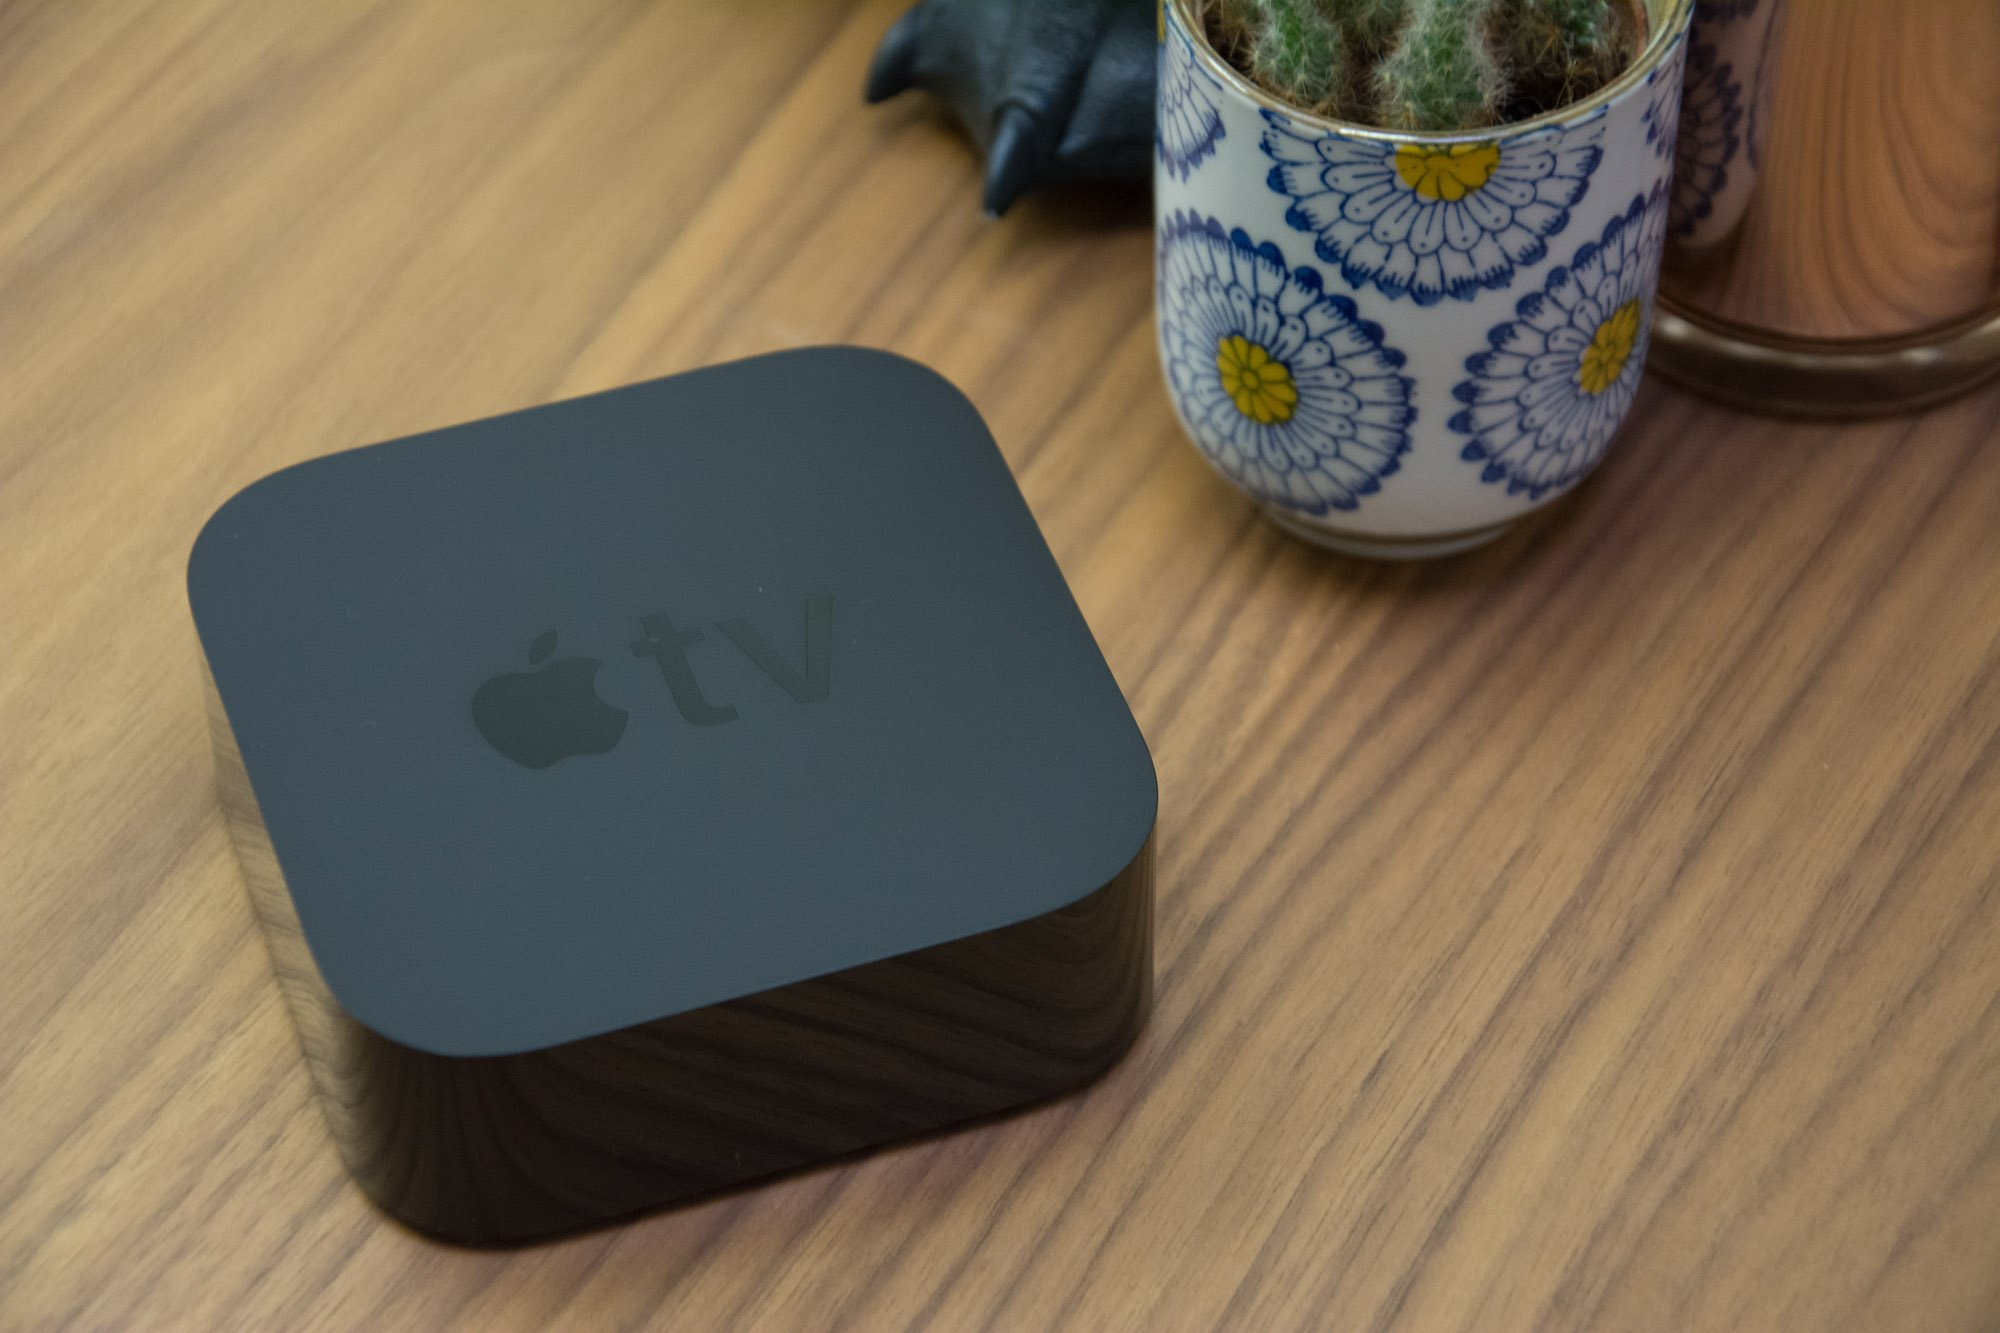 Apple TV 4K review: Apple's 4K media streamer will be the